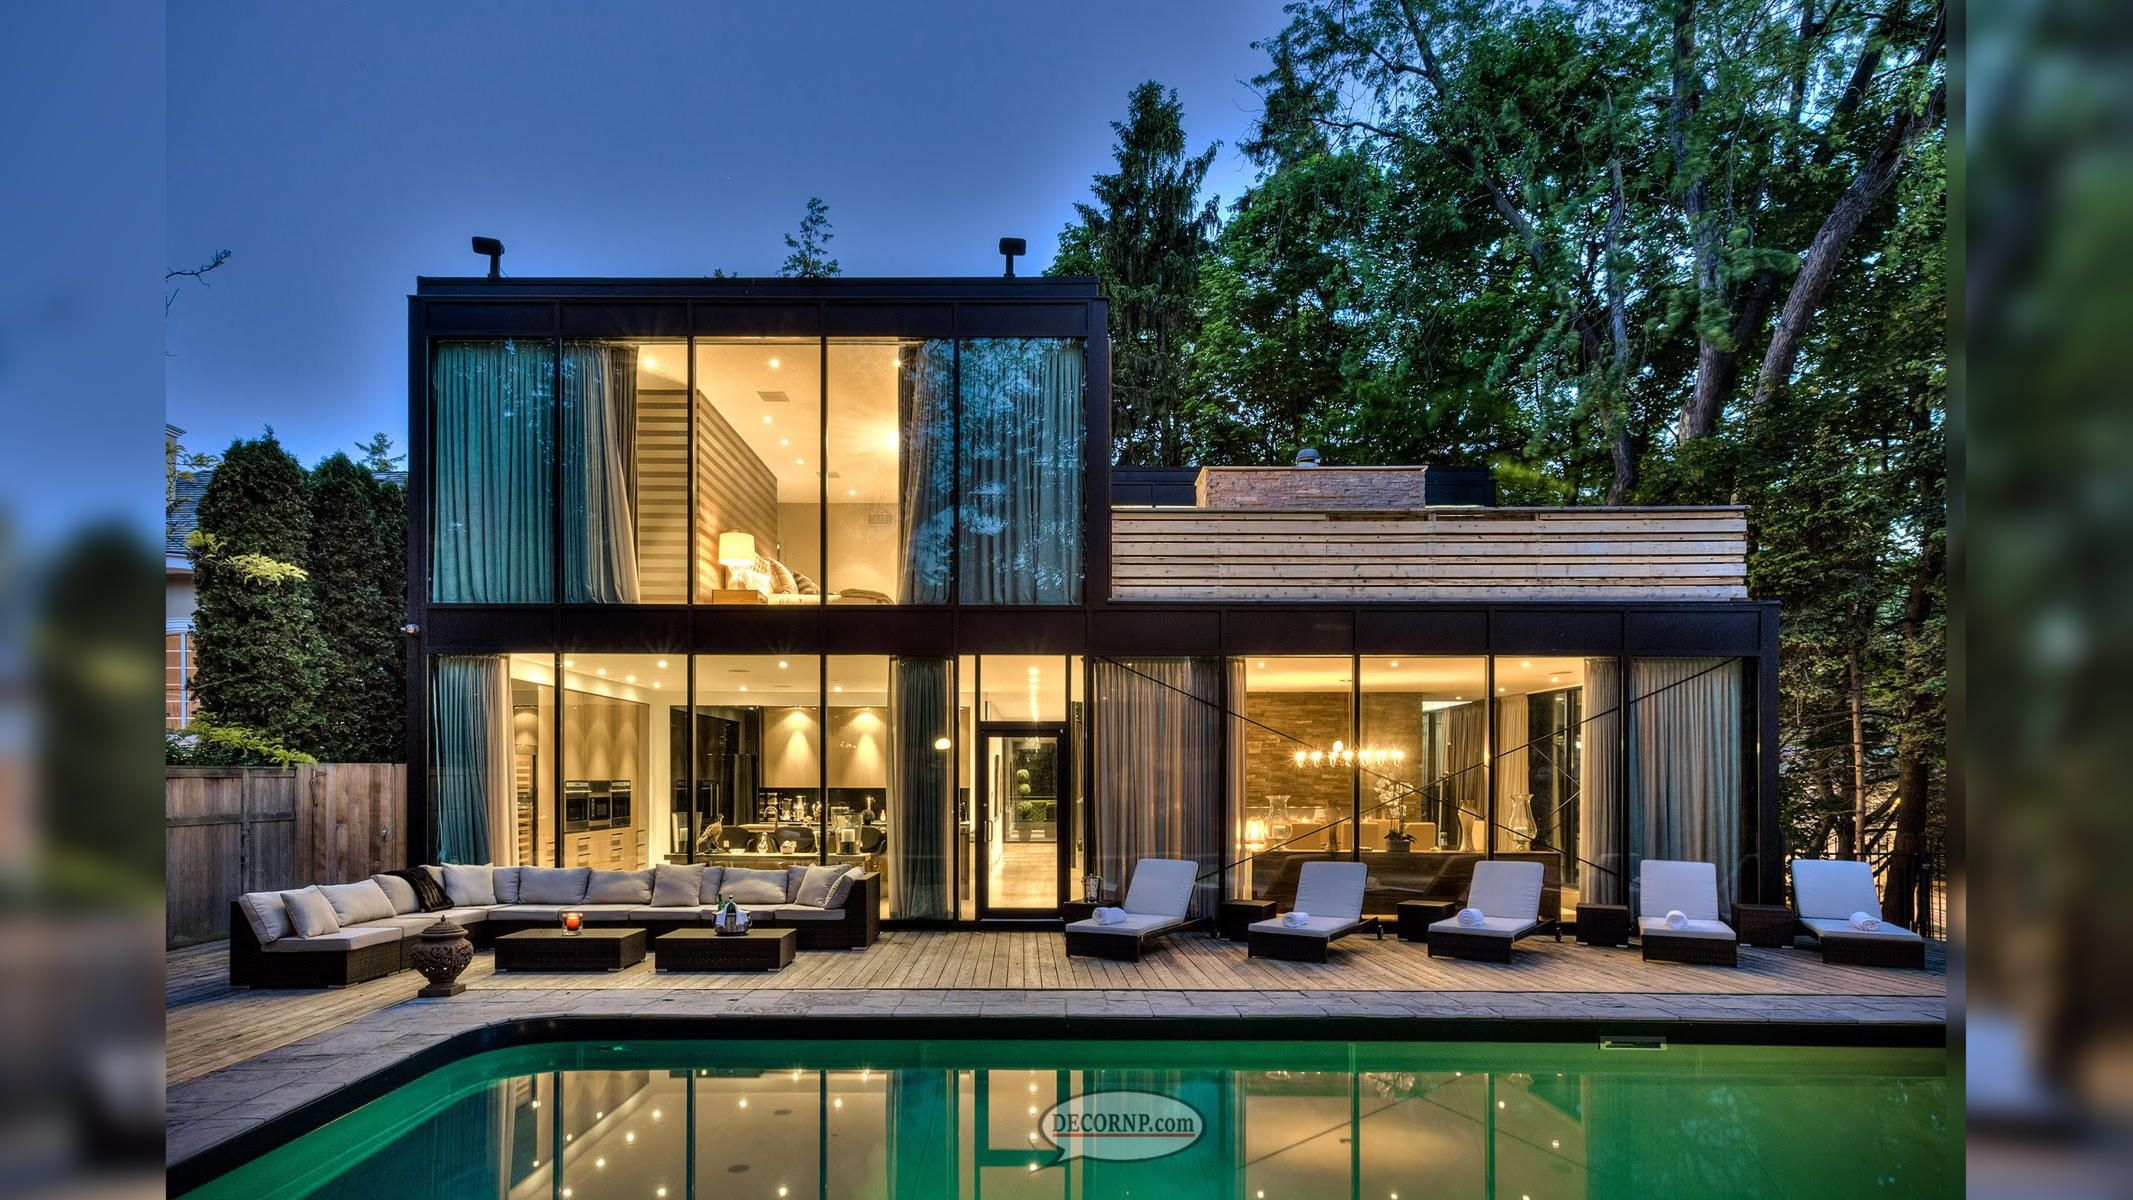 Top 10 Ideas For House Designing Interior In 2019 Decornp Glass House Design Glass House Small House Design Kerala